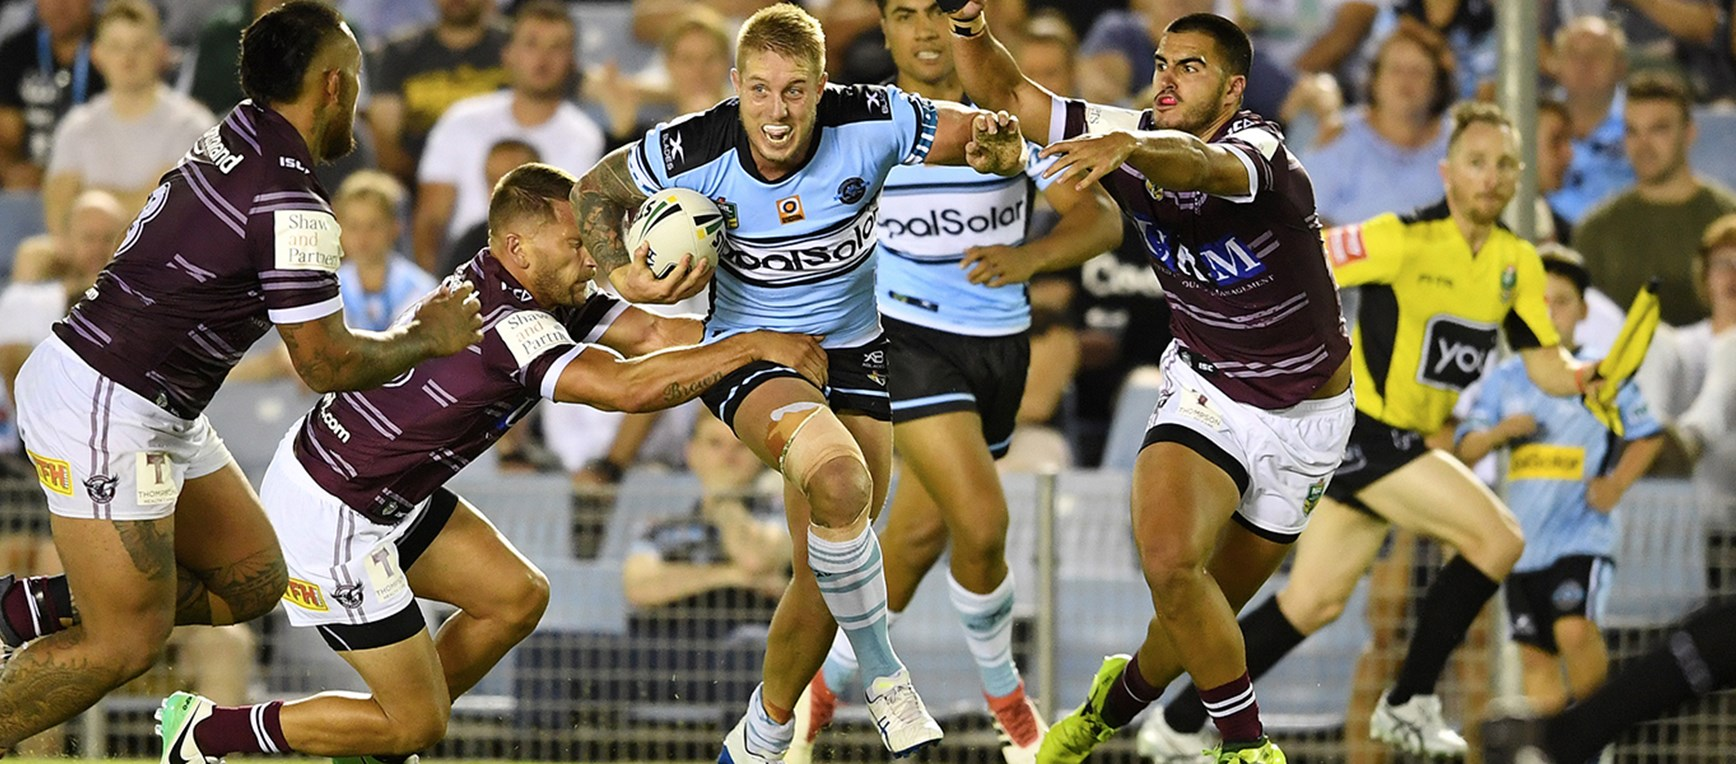 In Pictures: Sharks v Manly